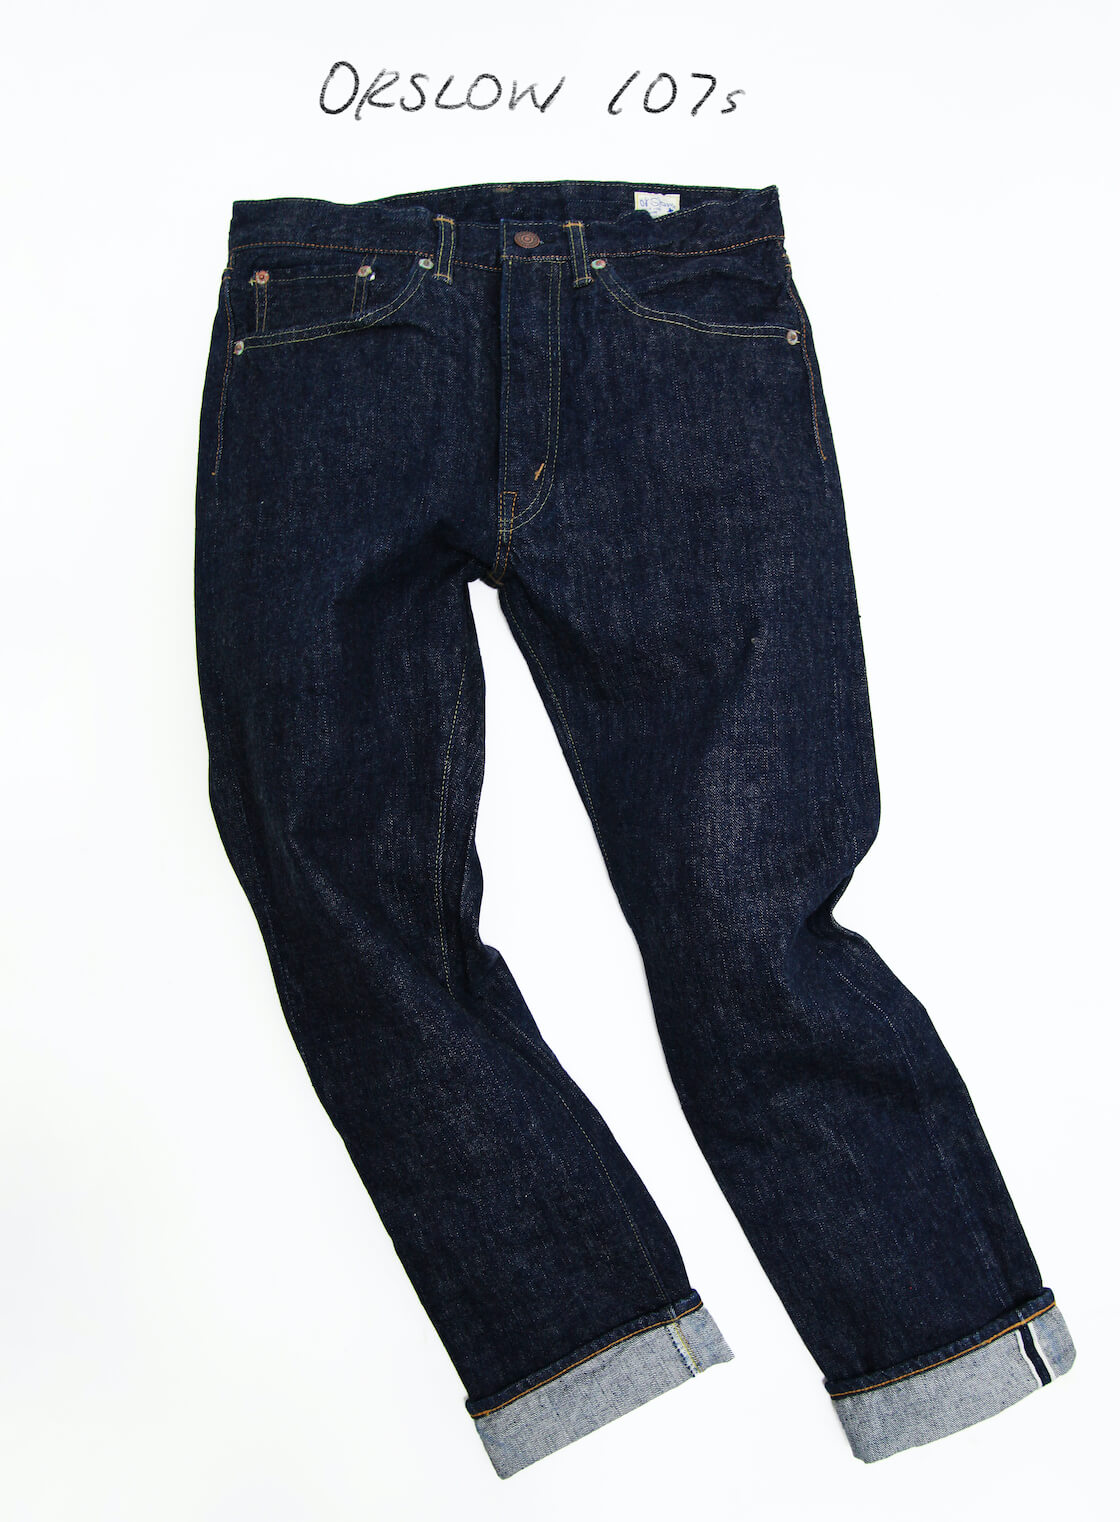 favorite jeans are the orslow 107 ivy denim